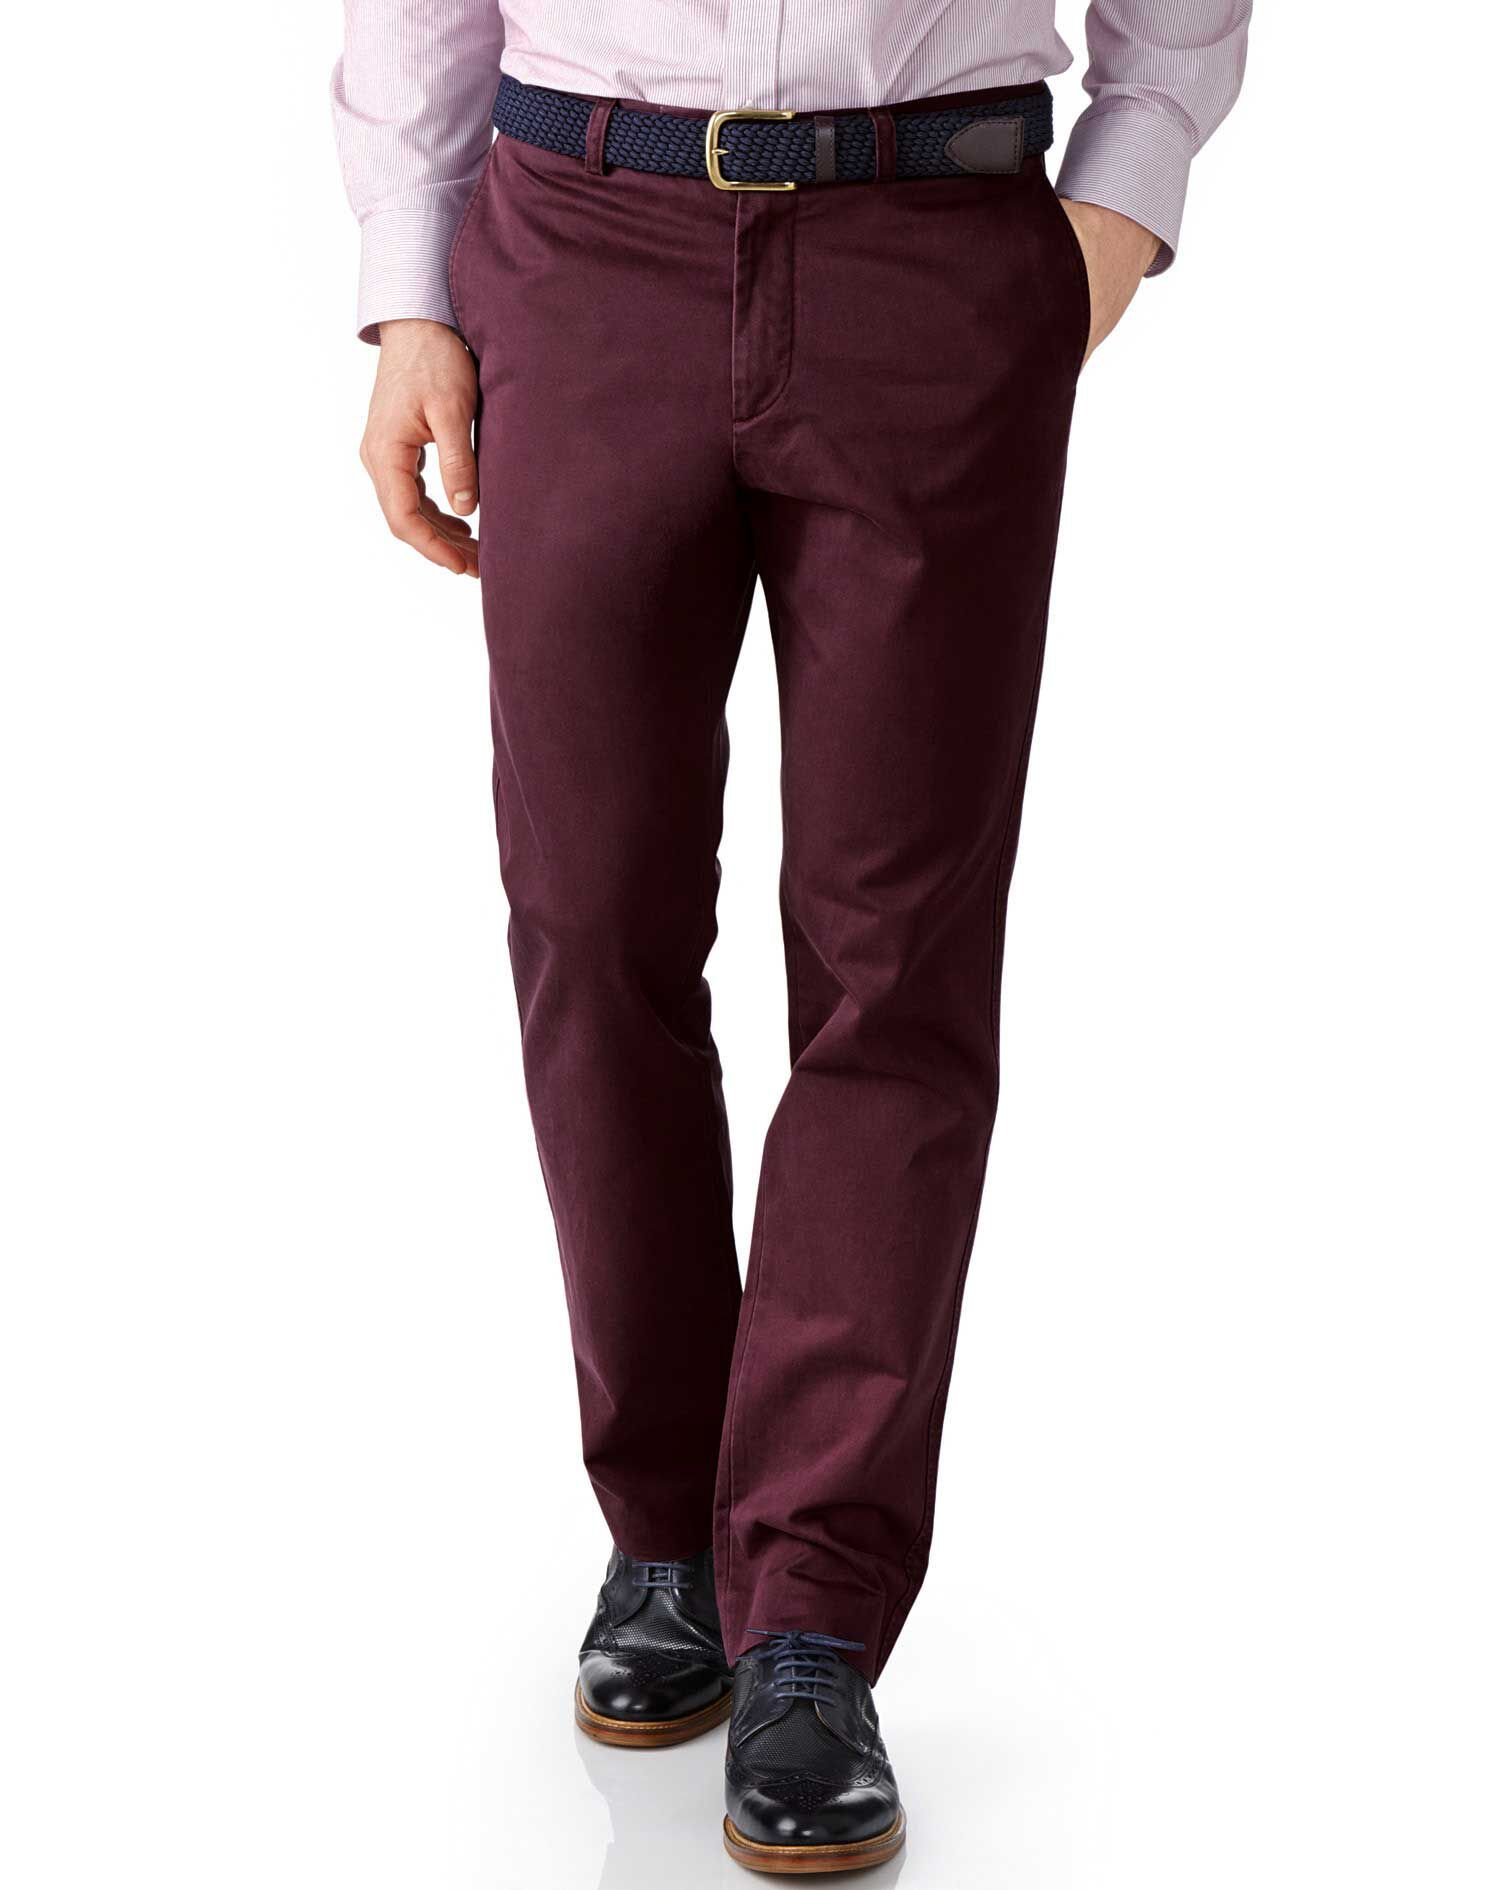 Charles Tyrwhitt Wine Slim Fit Flat Front Cotton Chino Pants Size W32 L34